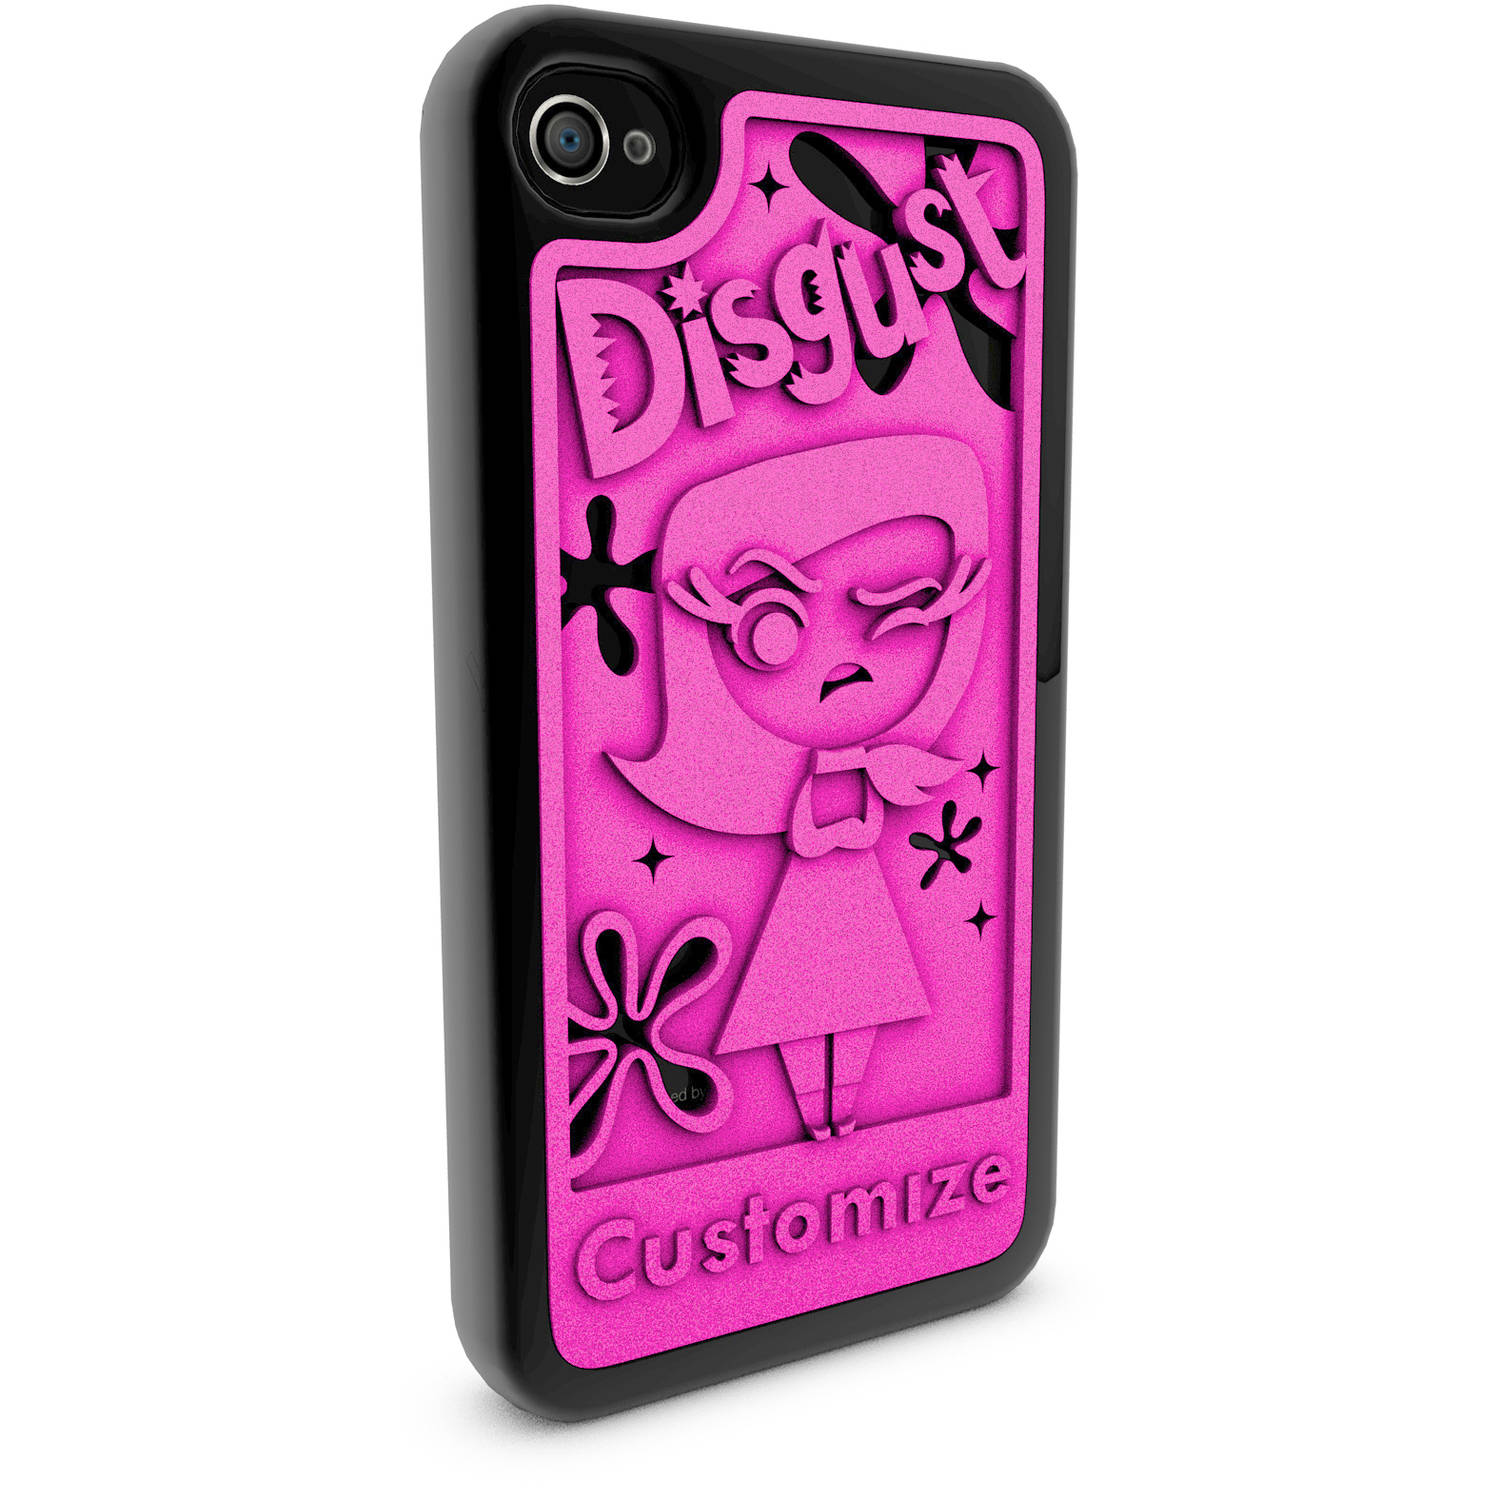 Apple iPhone 4 and 4S 3D Printed Custom Phone Case - Disney/Pixar Inside Out - Disgust